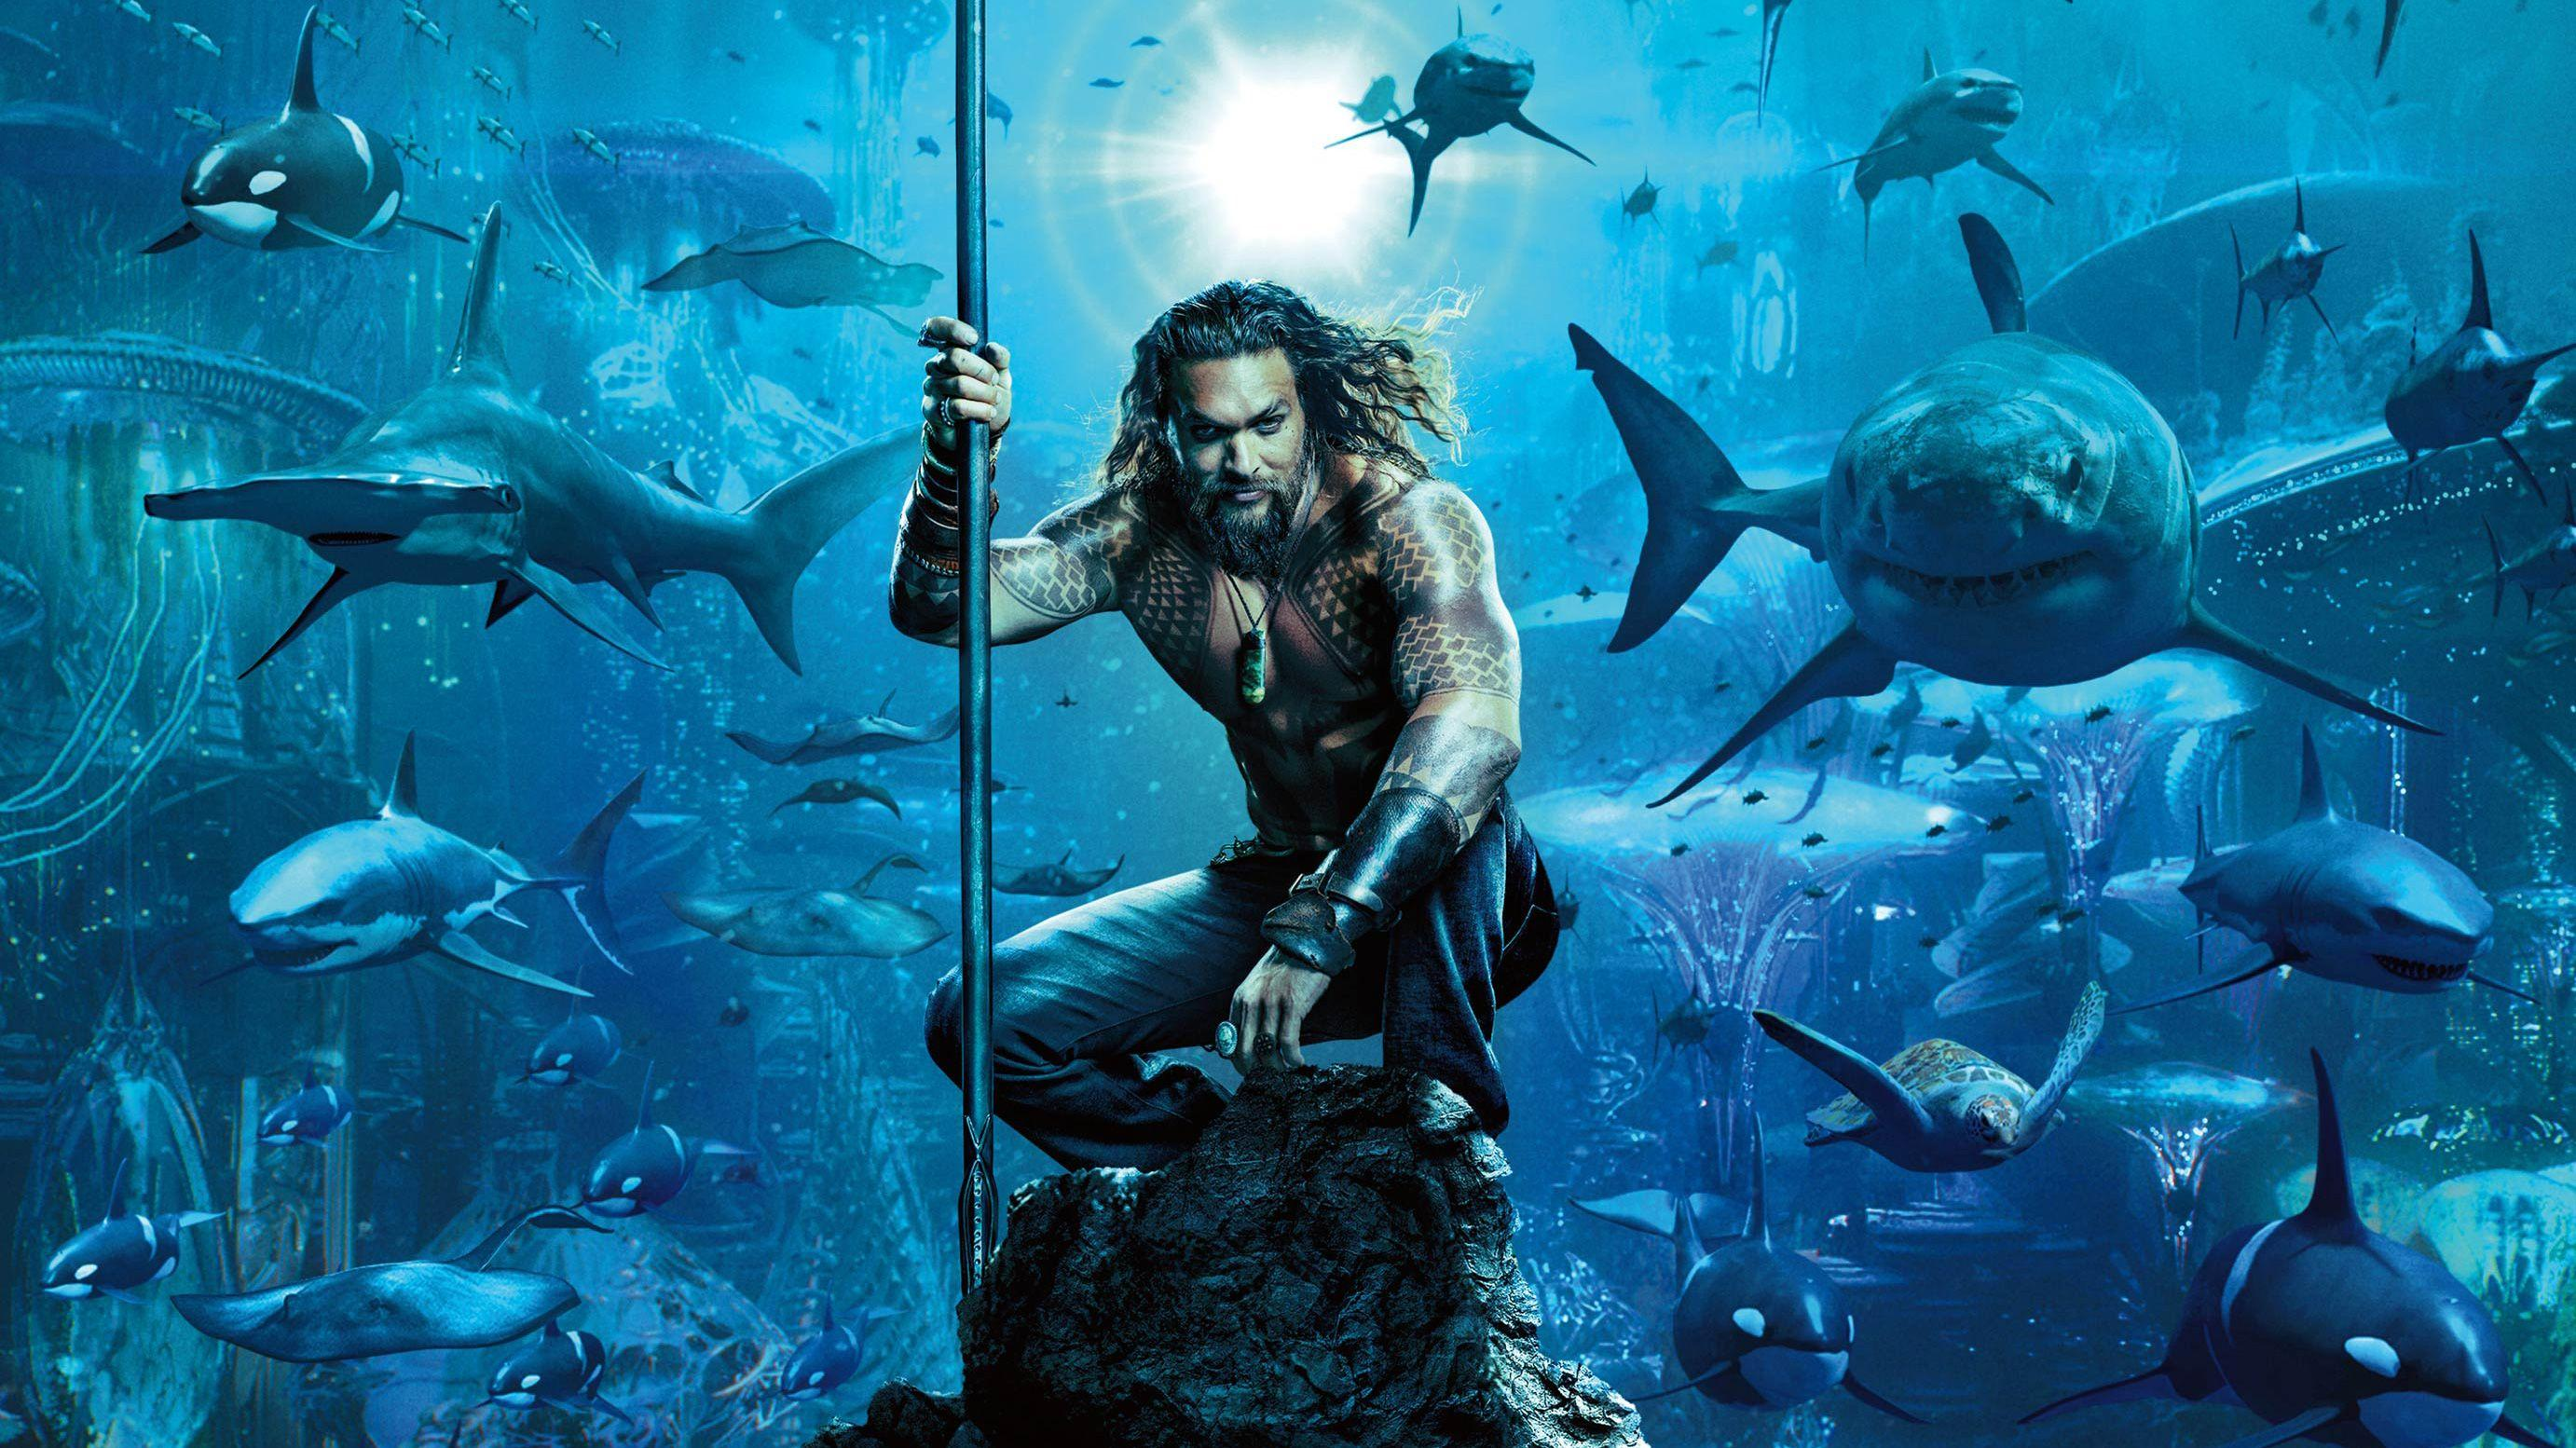 Aquaman Movie Poster 2018, HD Movies, 4k Wallpapers, Images ...